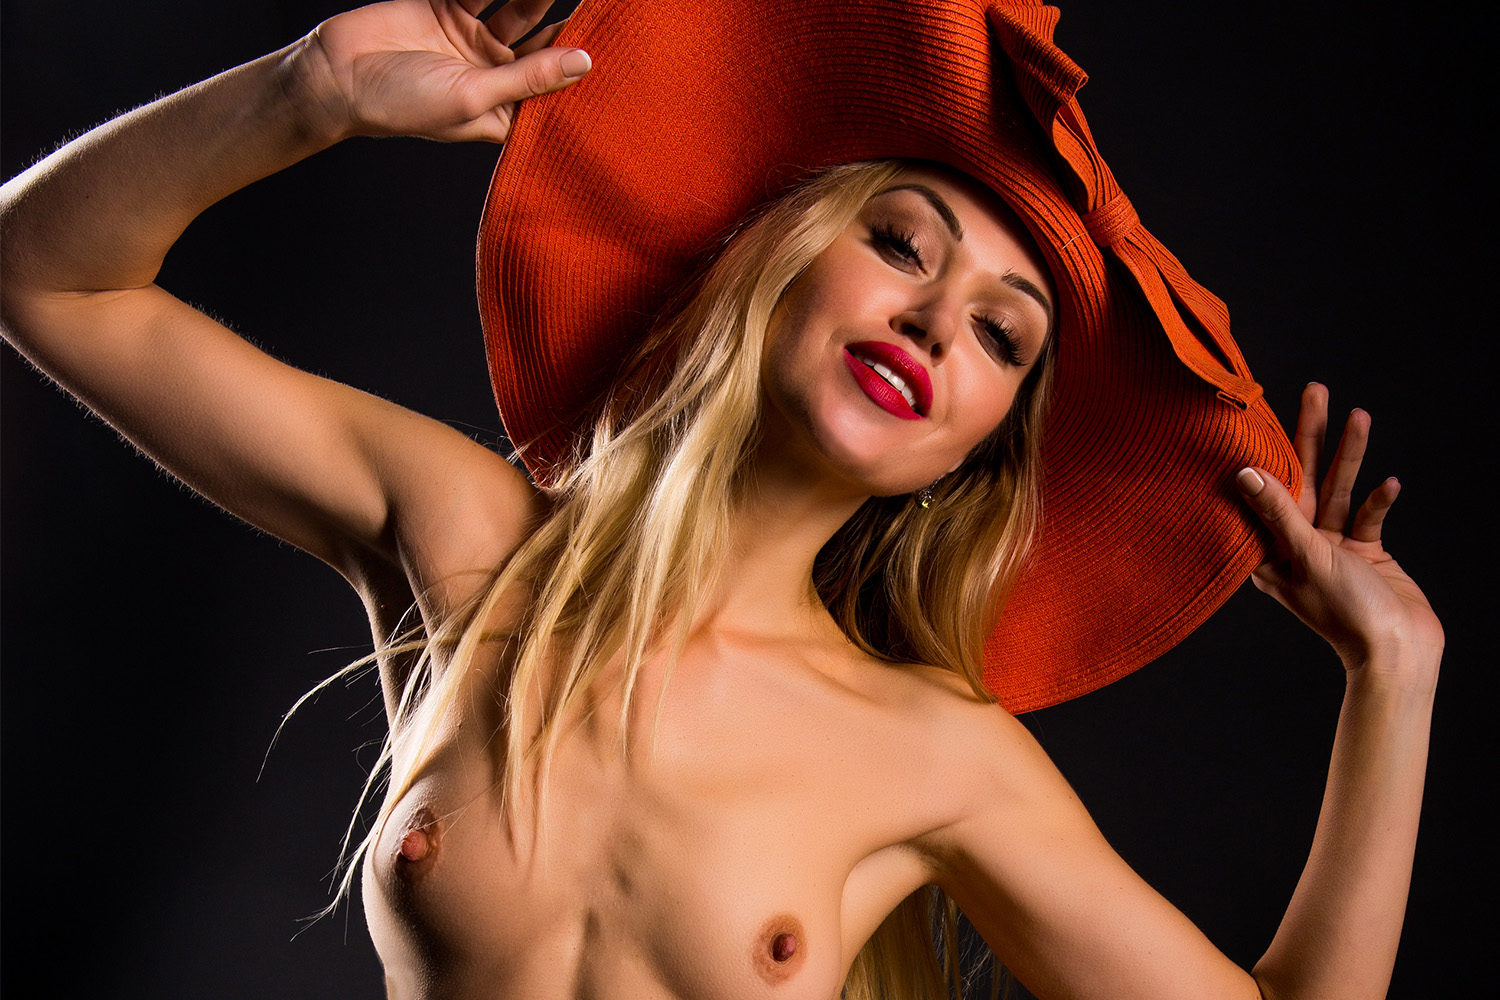 Nude Showcase: Like My Hats